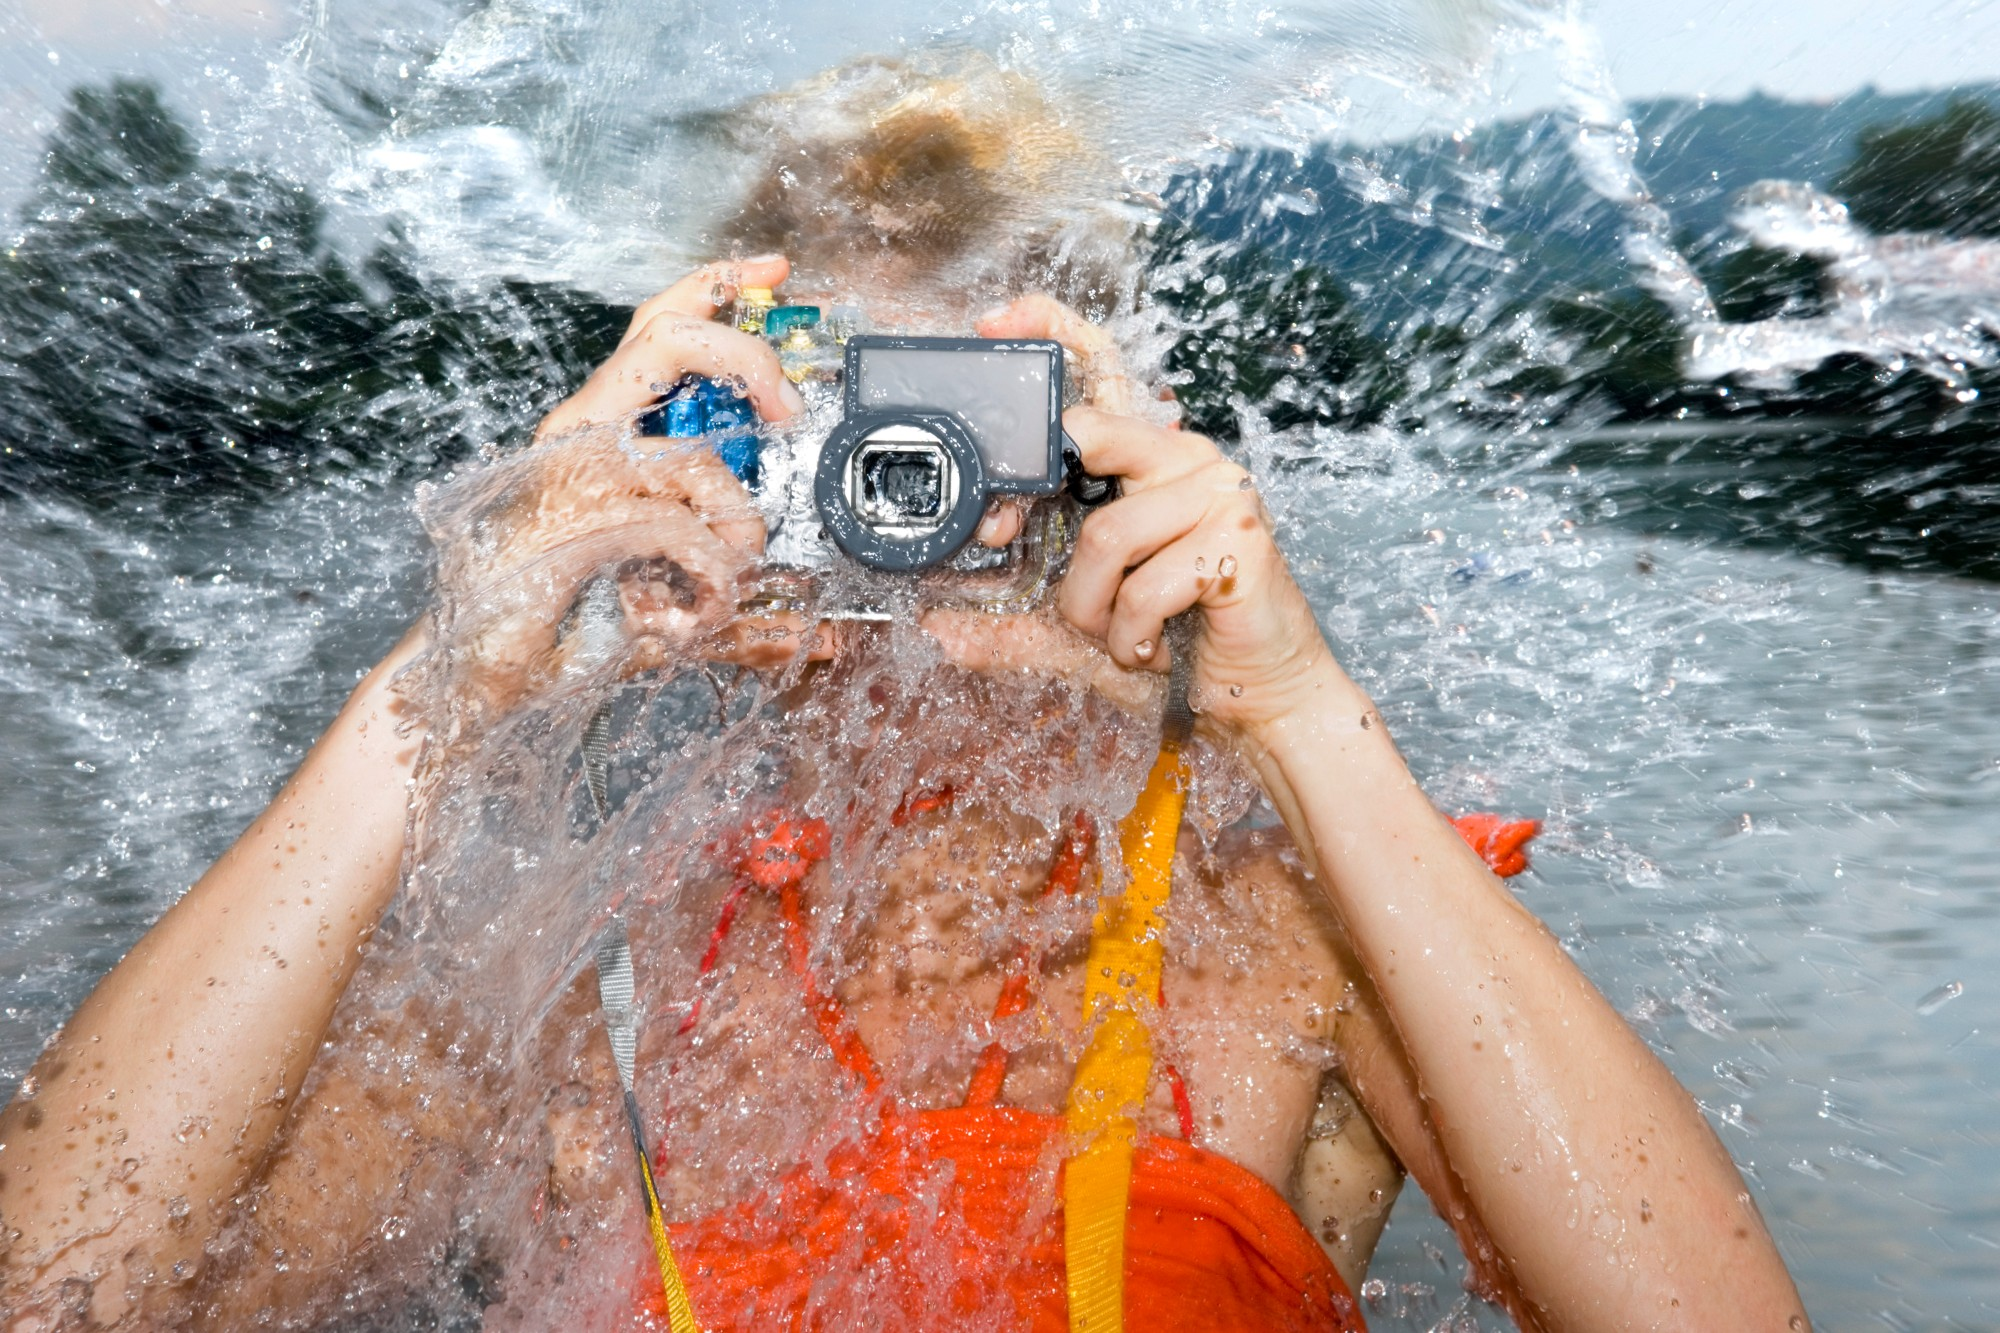 Image ID: PDI0257290 Woman splashed with water as she photographs with underwater camera